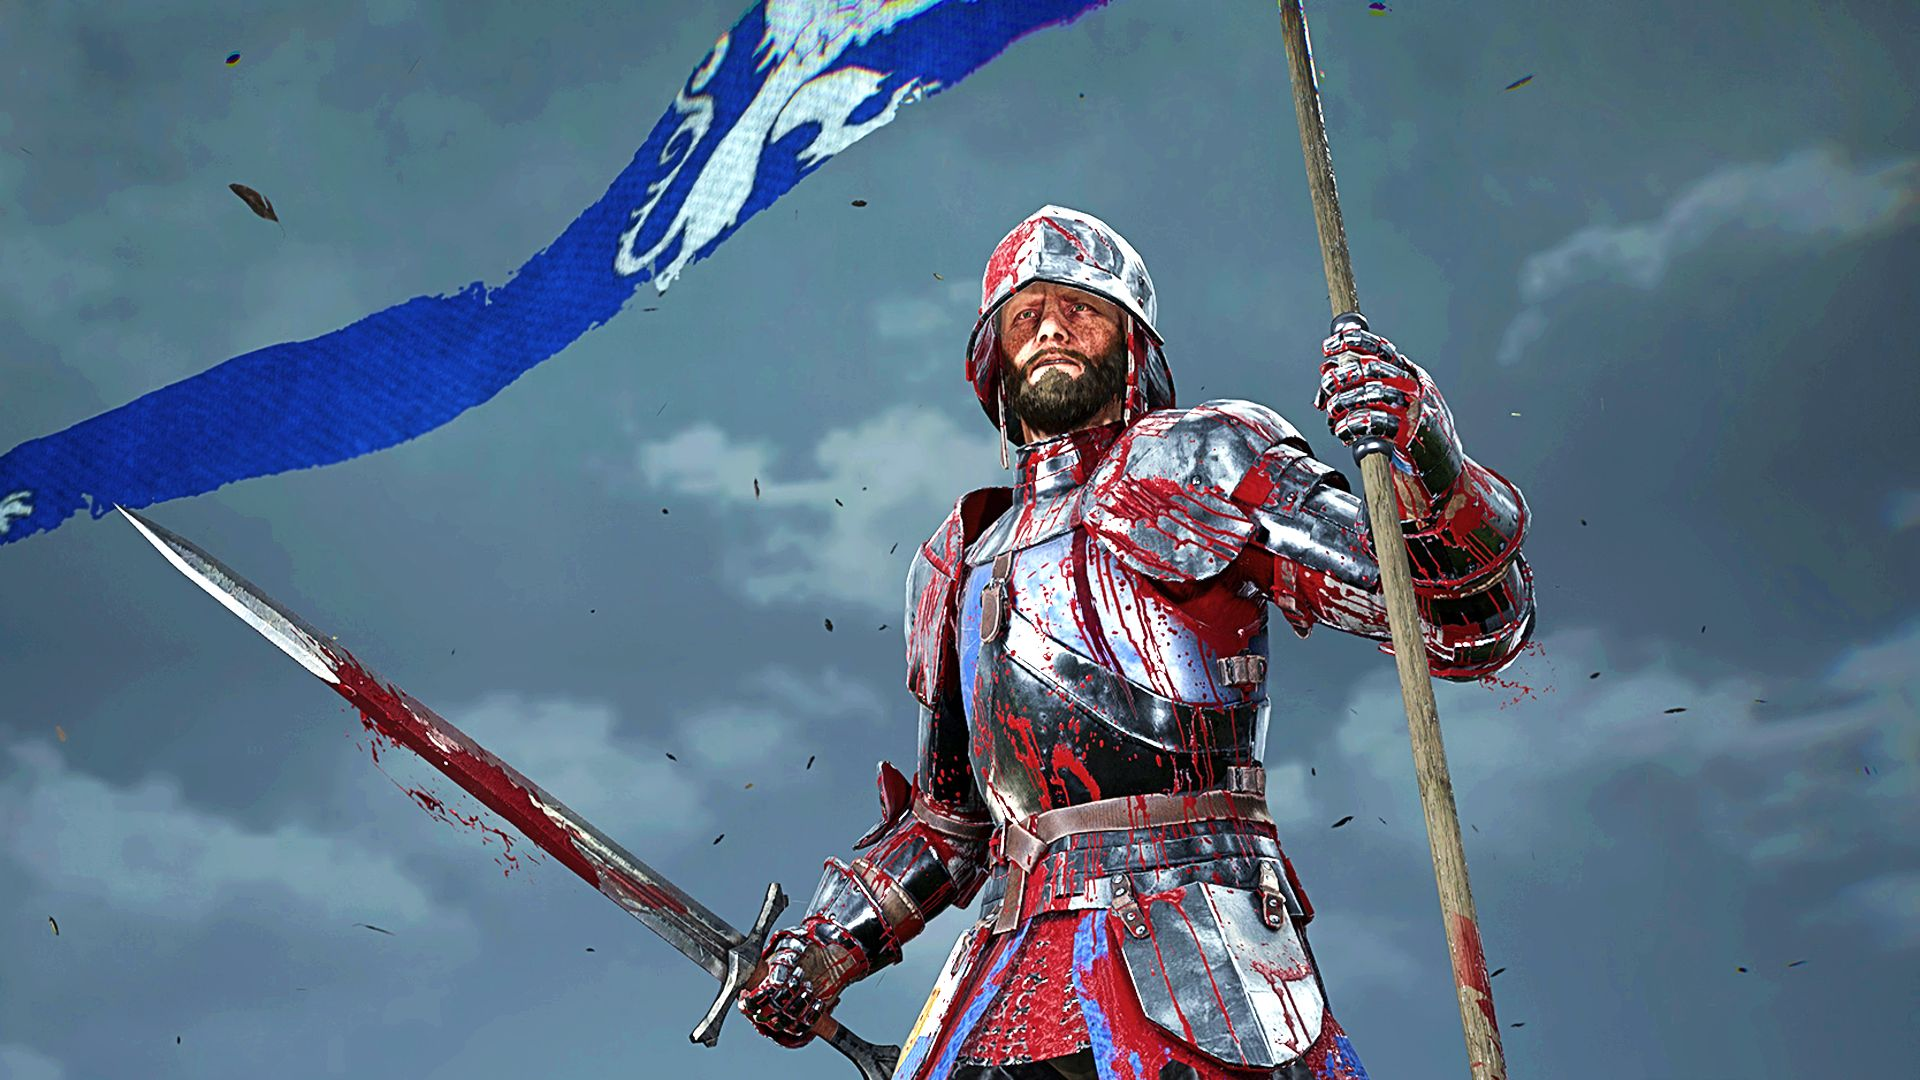 Chivalry 2 beats Mordhau for sheer spectacle